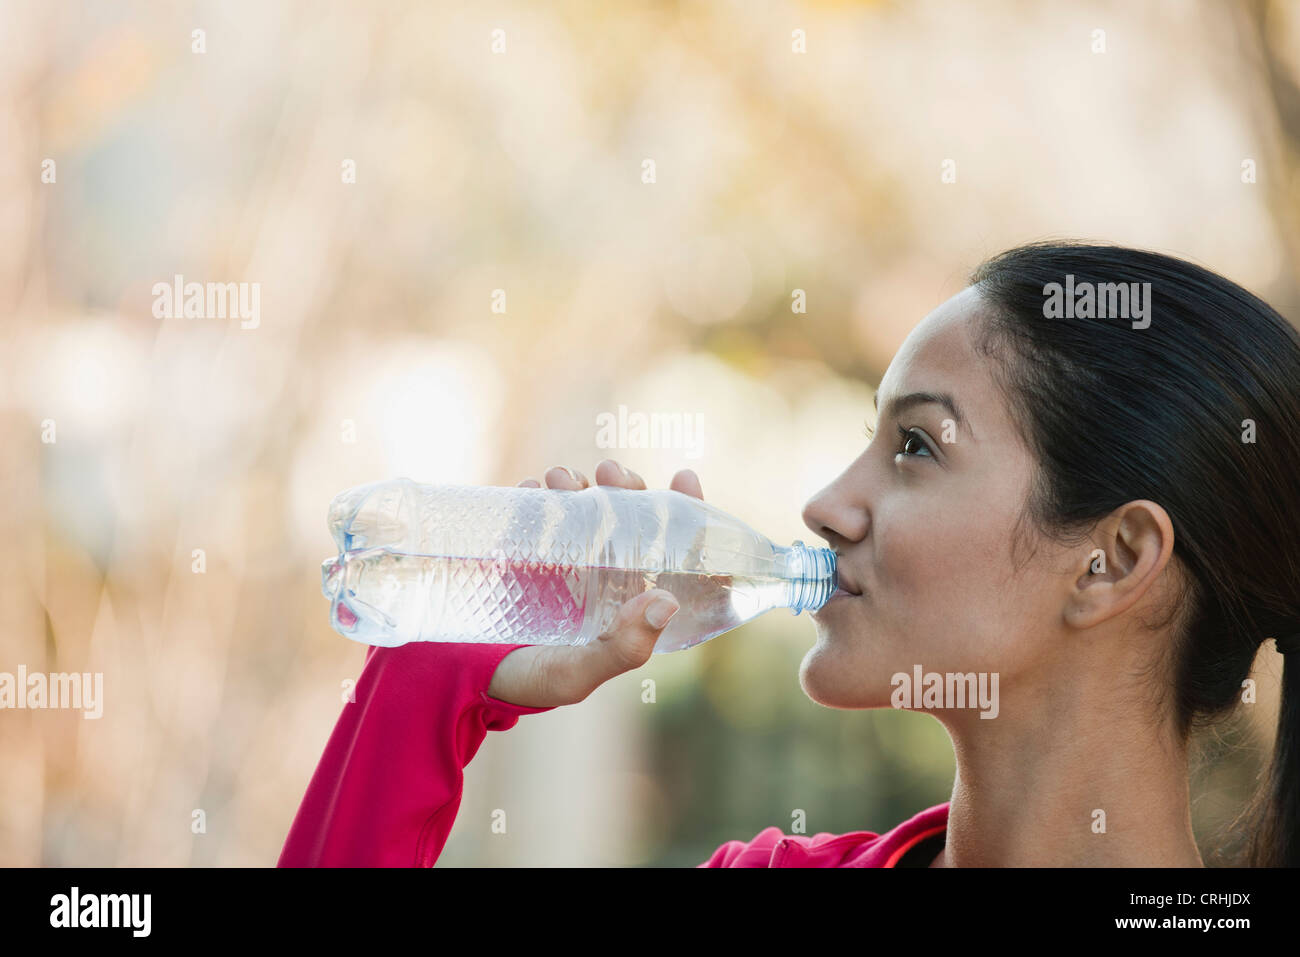 Young woman drinking bottle of water - Stock Image